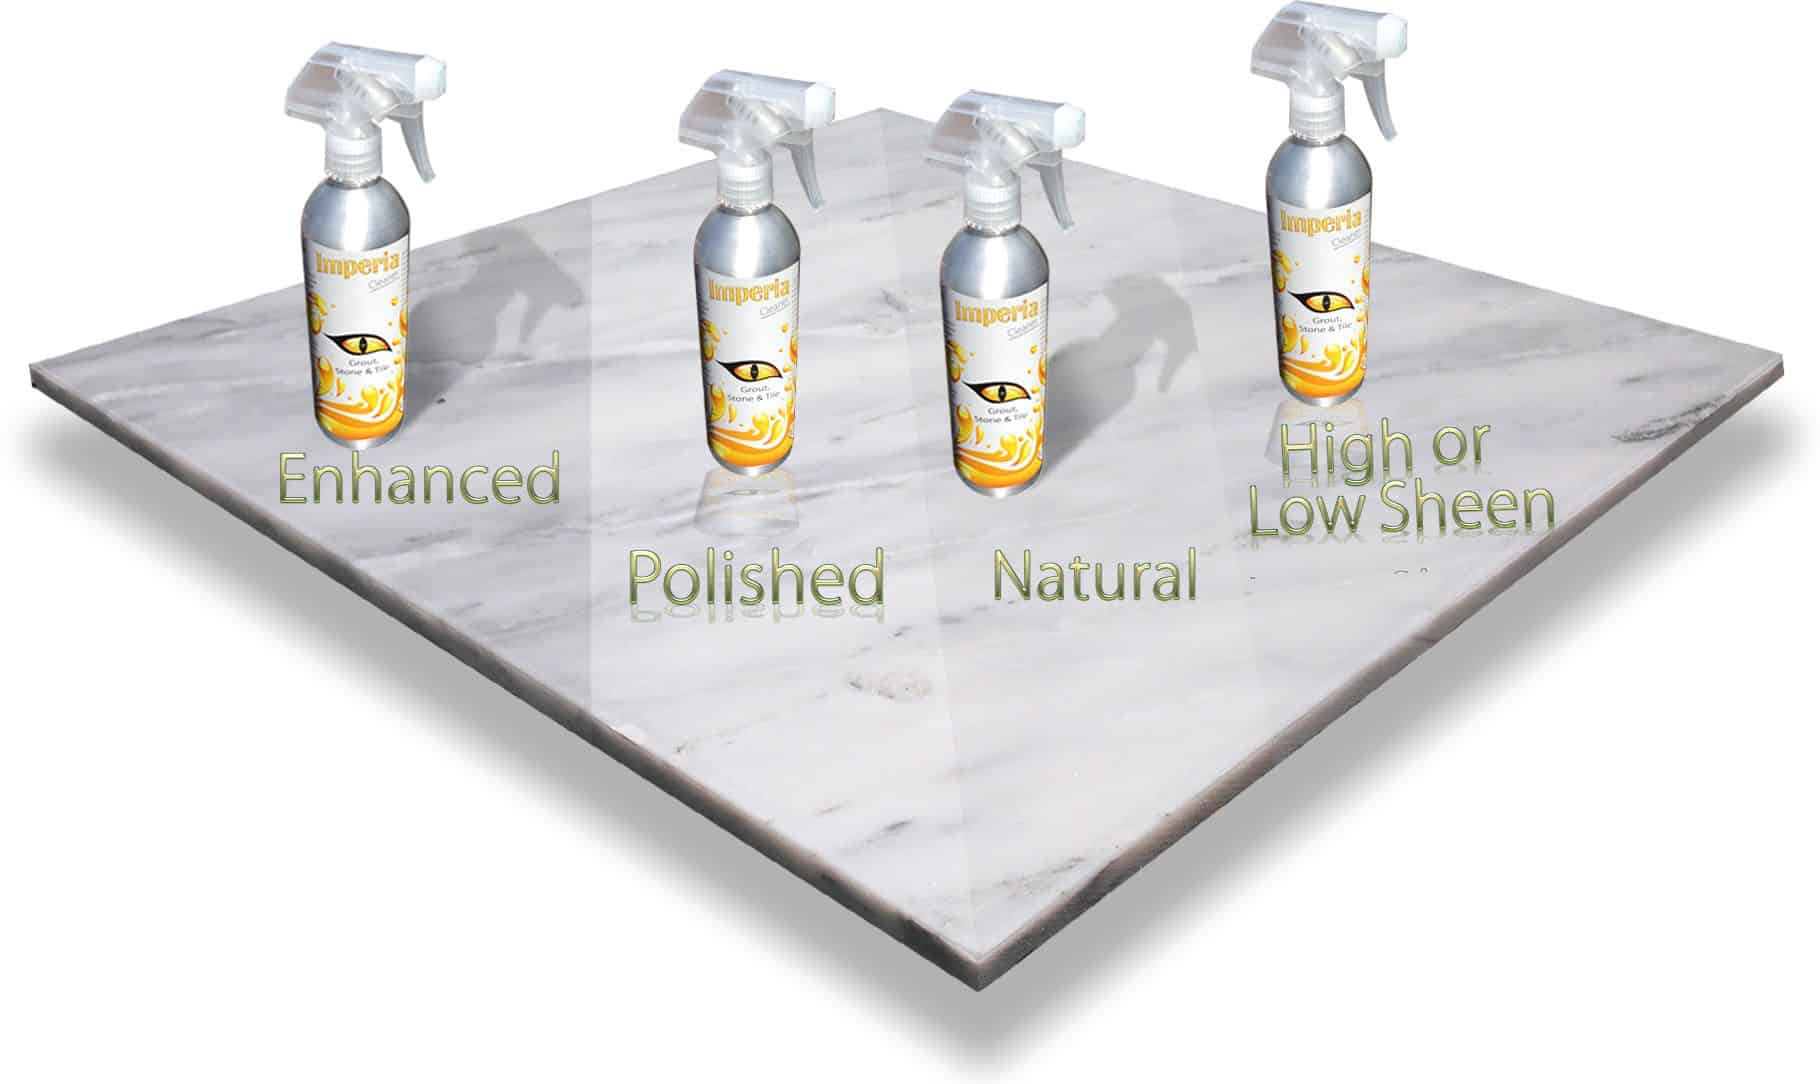 Imperia Maintenance Cleaner - Maintaining Stone Surface by Removing Stains and Superficial Rust